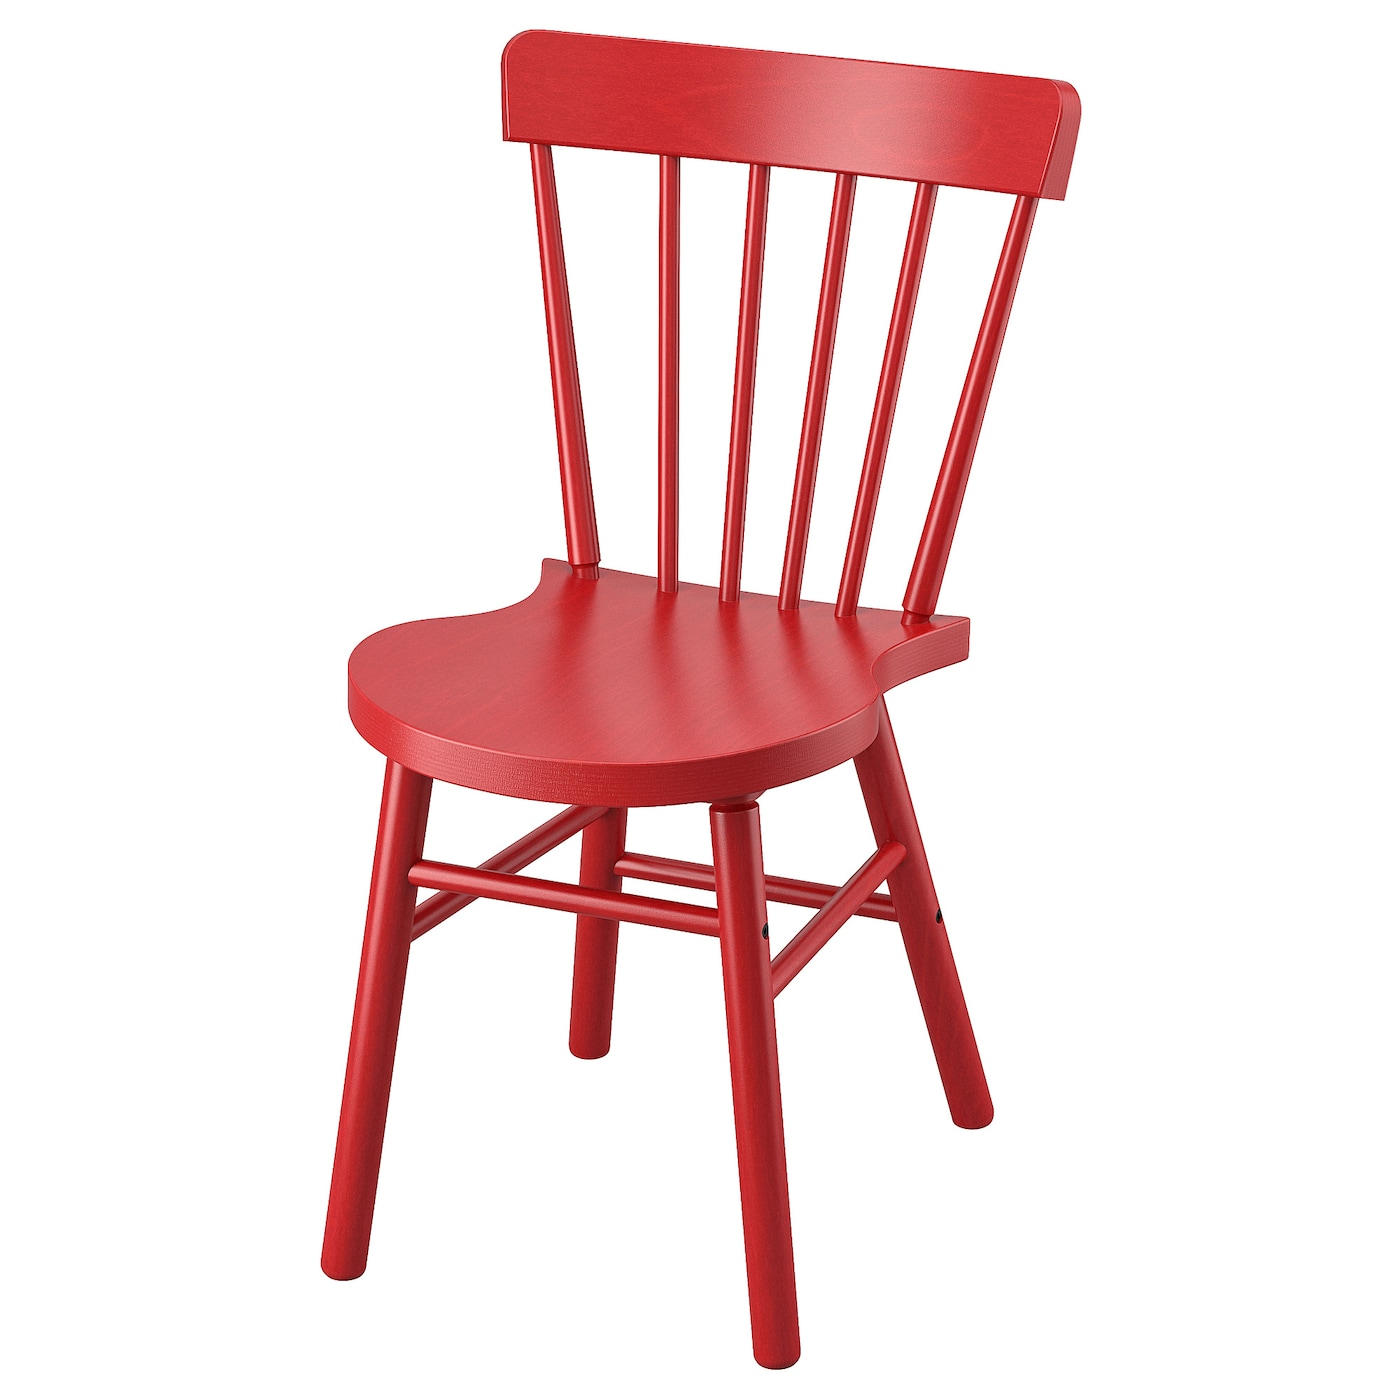 ryd-chair-red__0727341_PE735613_S5